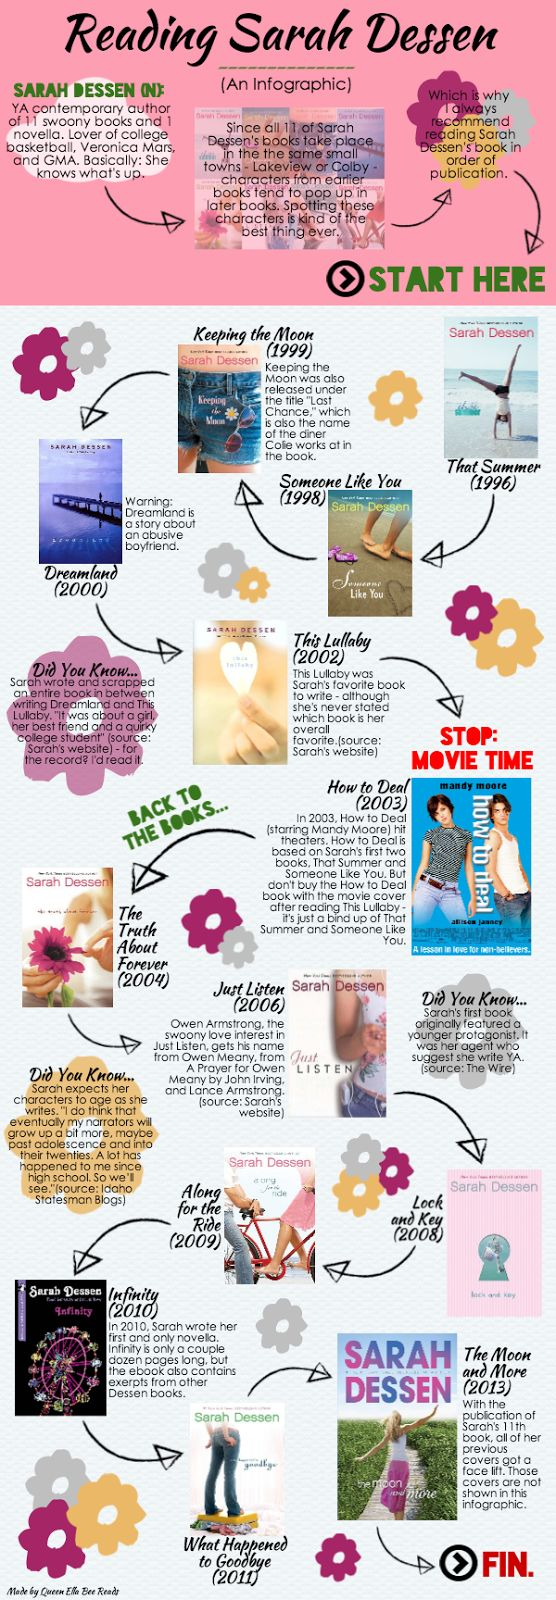 """YAL romance novelist, Sarah Dessen, is known for her captivating stories of young love. Website """"ellabeereads.blogspot.com"""" provides Dessen readers with a series of infographic posts on how to read her novels. From her oldest to her latest novels, she never fails to touch her readers' hearts. Ella Bee, Q. (2014, March 13). How to: Read Sarah Dessen. Retrieved March 13, 2015."""